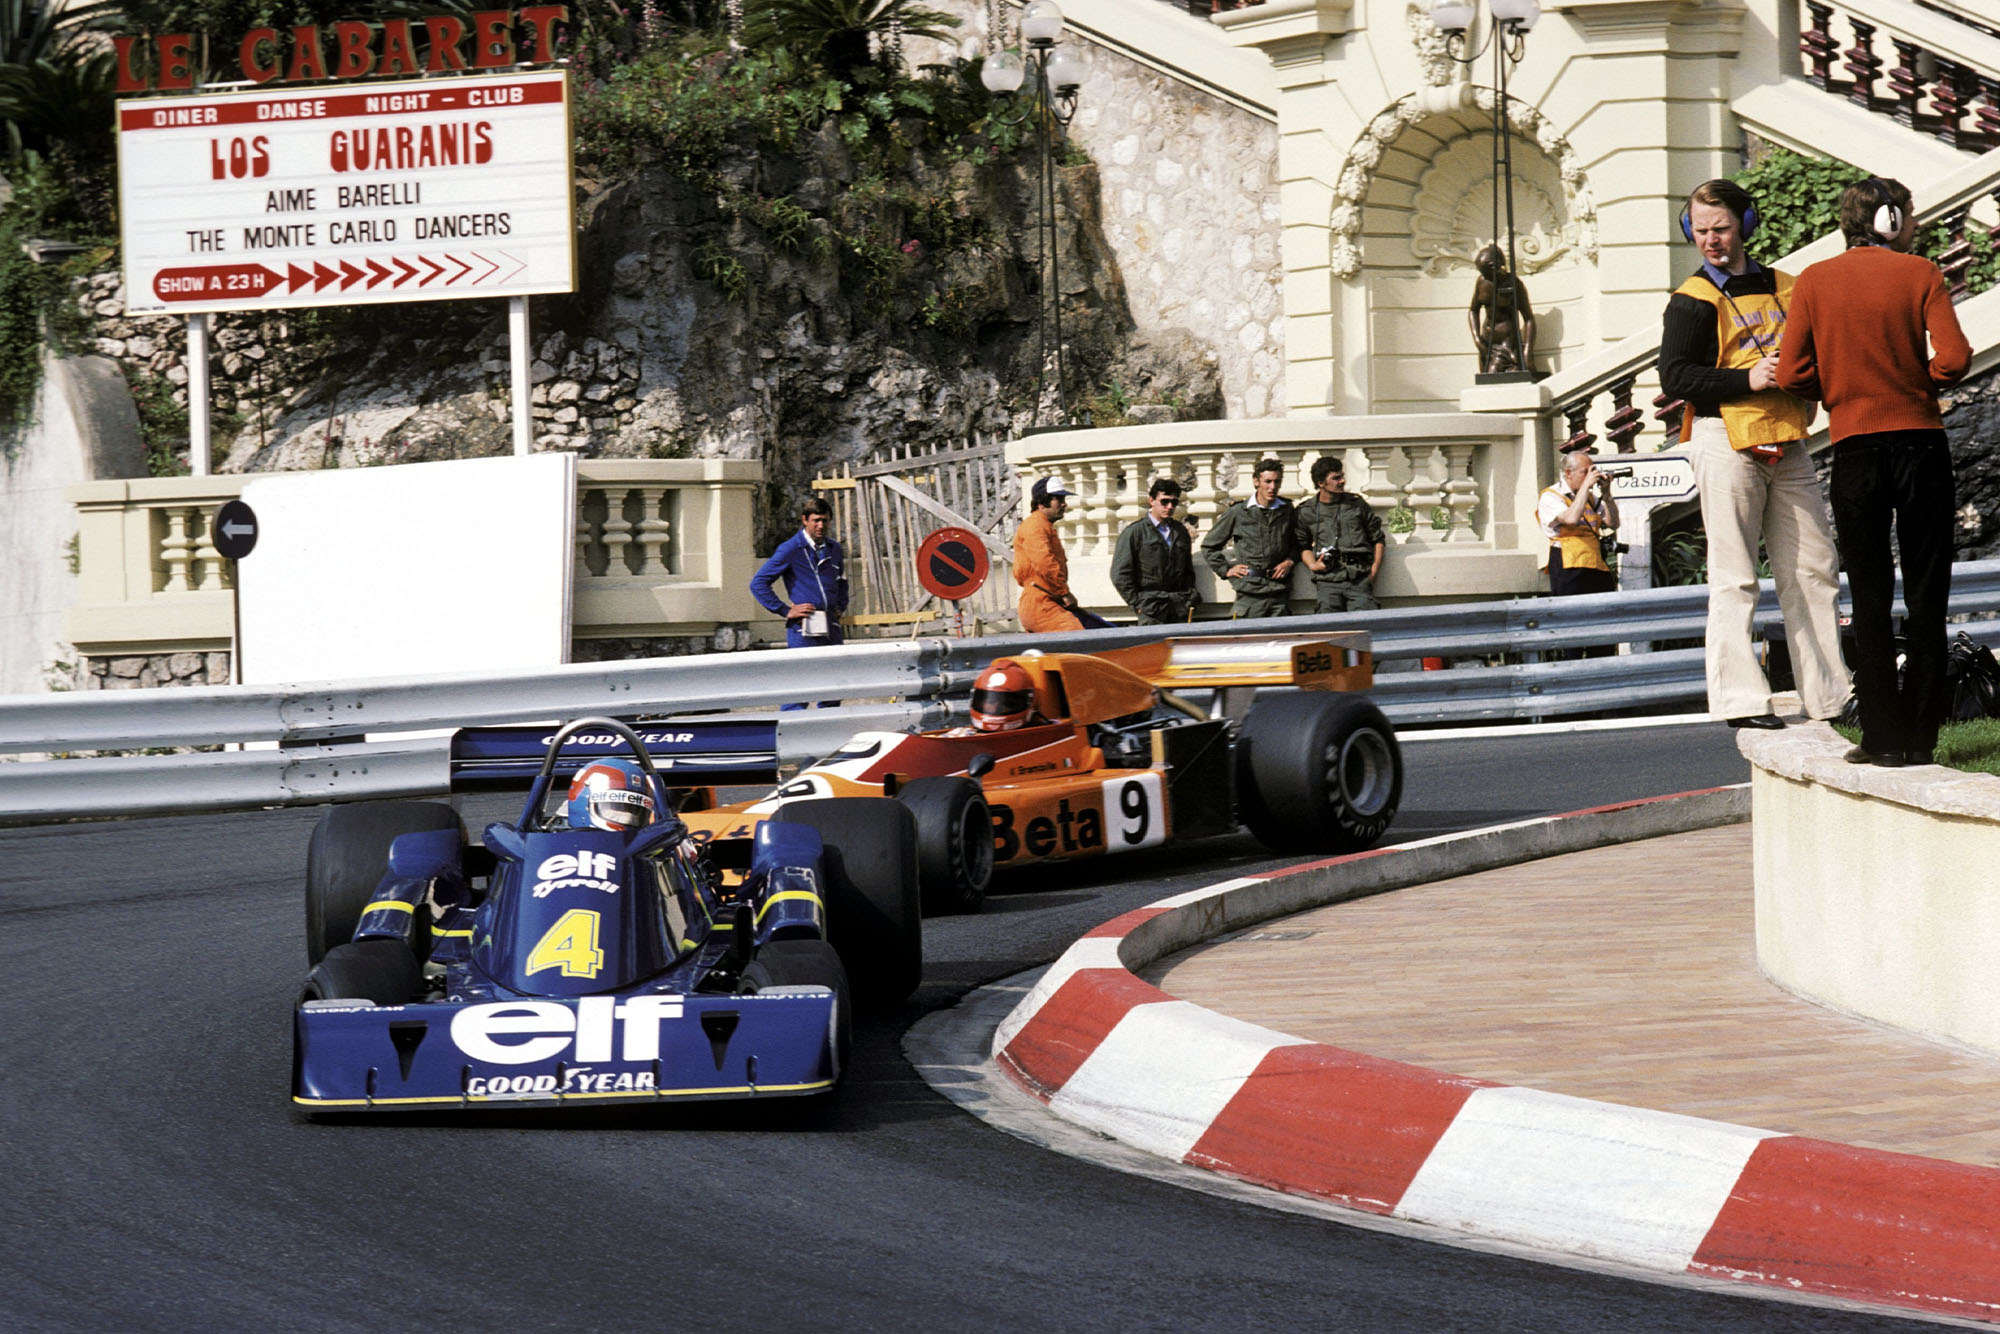 Patrick Depailler (Tyrrell) is followed by Vittorio Brambilla (March) at the 1976 Monaco Grand Prix.